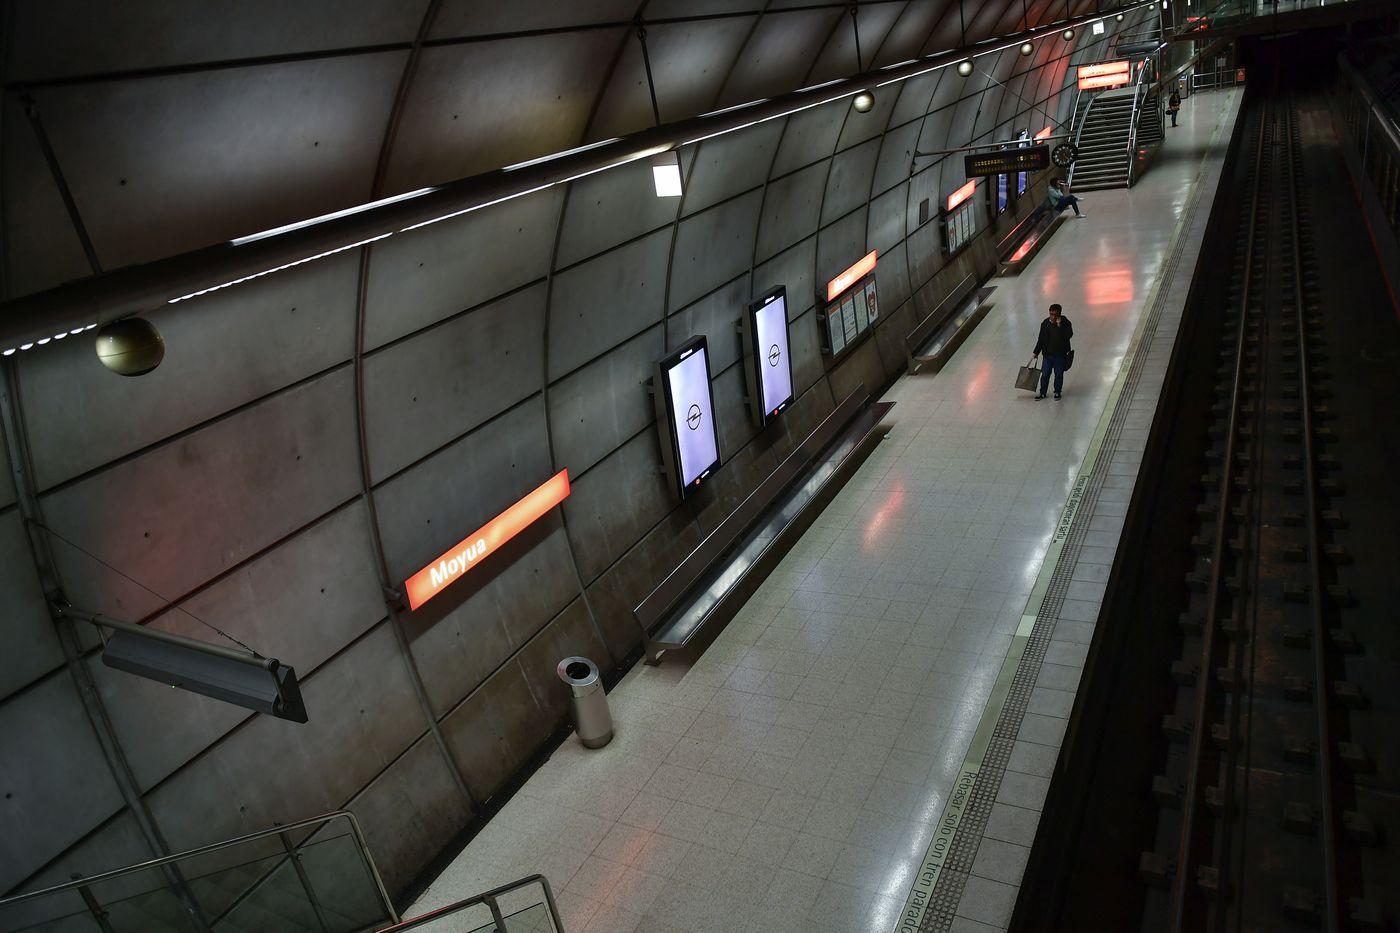 Passengers wait in an empty subway station, in Bilbao, northern Spain, Saturday, March 14, 2020. Spain's prime minister has announced a two-week state of emergency from Saturday in a bid to contain the new coronavirus outbreak. (AP Photo/Alvaro Barrientos)